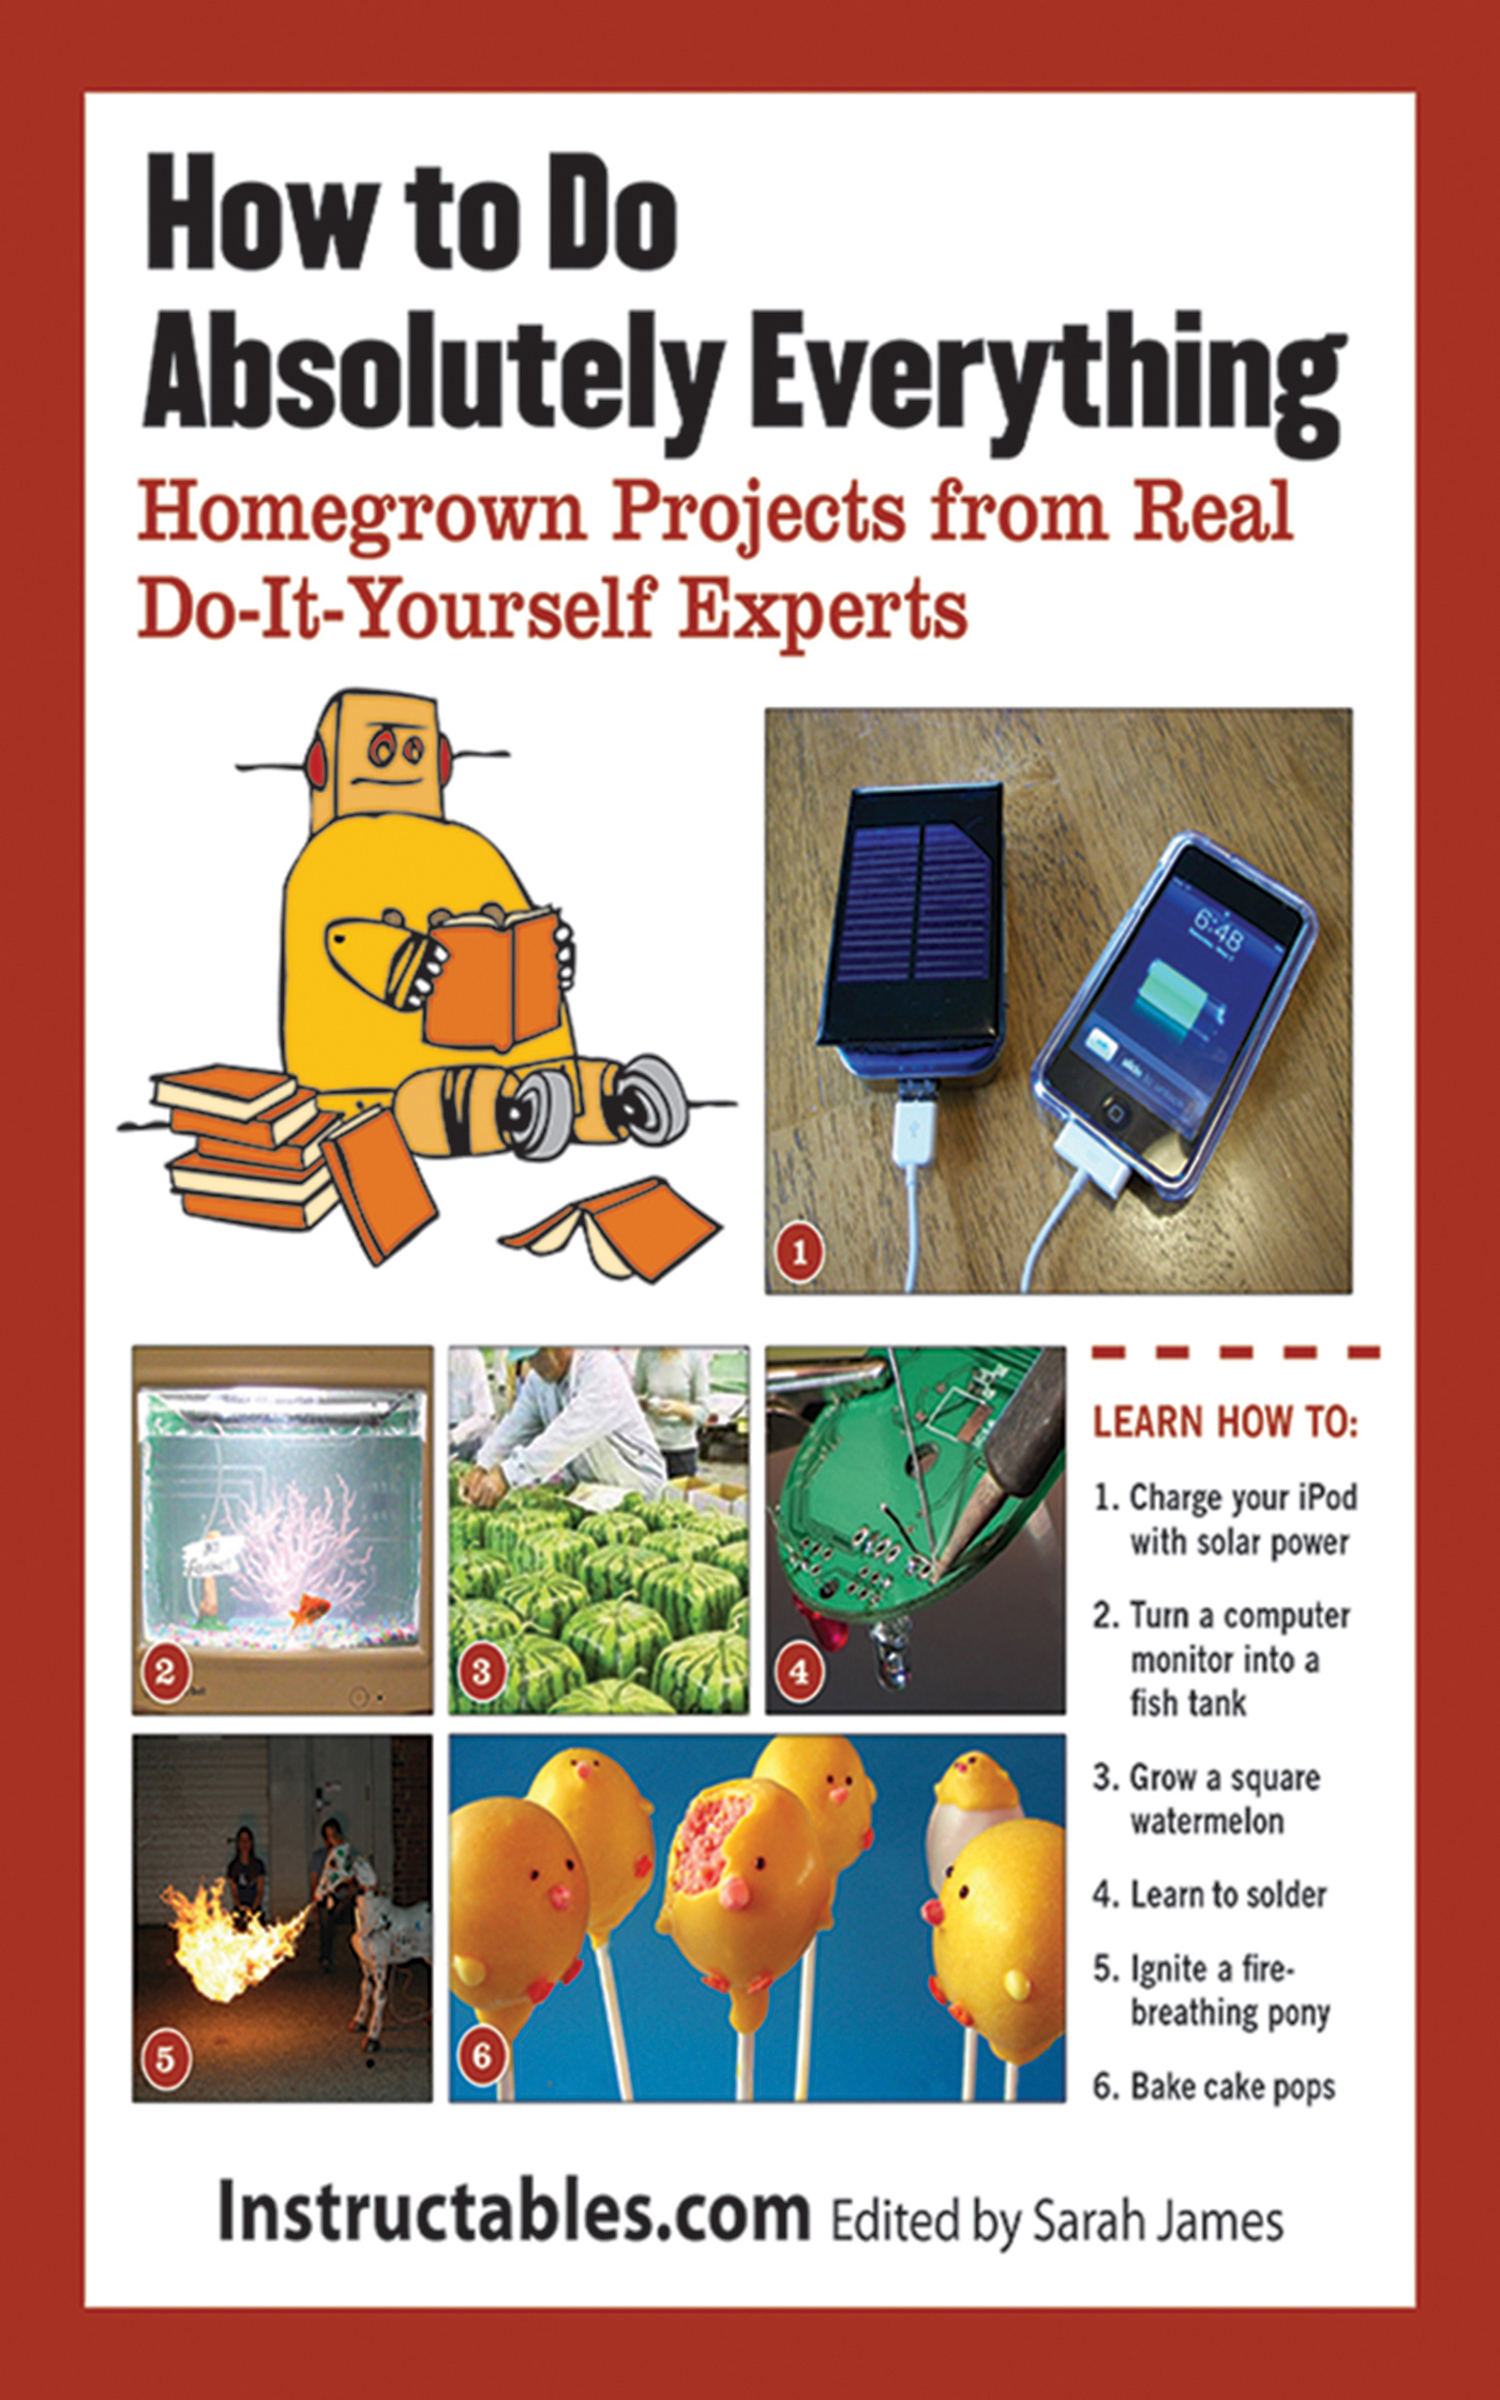 How to Do Absolutely Everything Homegrown Projects from Real Do-It-Yourself Experts